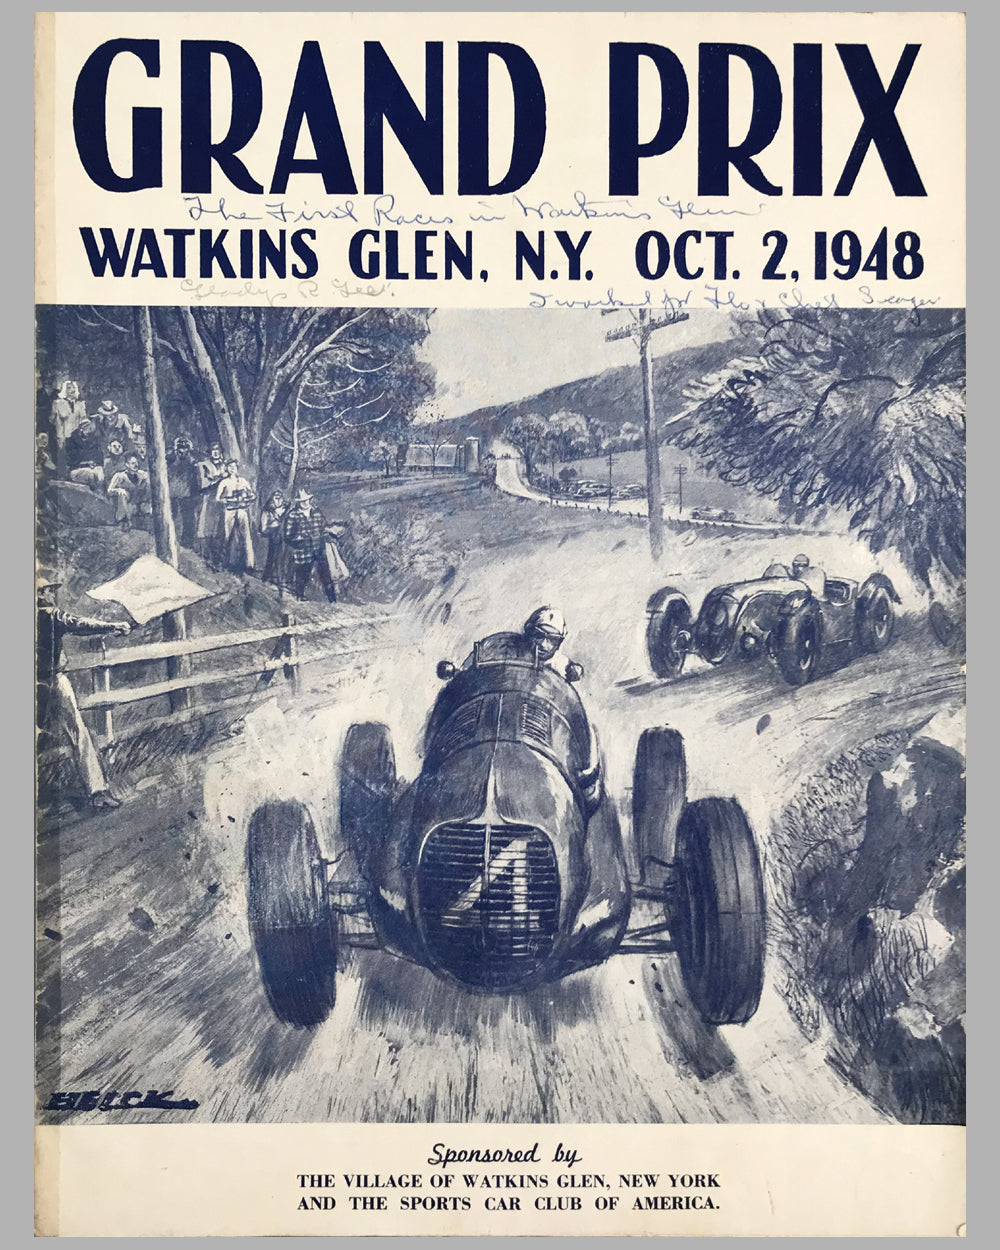 1948 U.S. Grand Prix at Watkins Glen program